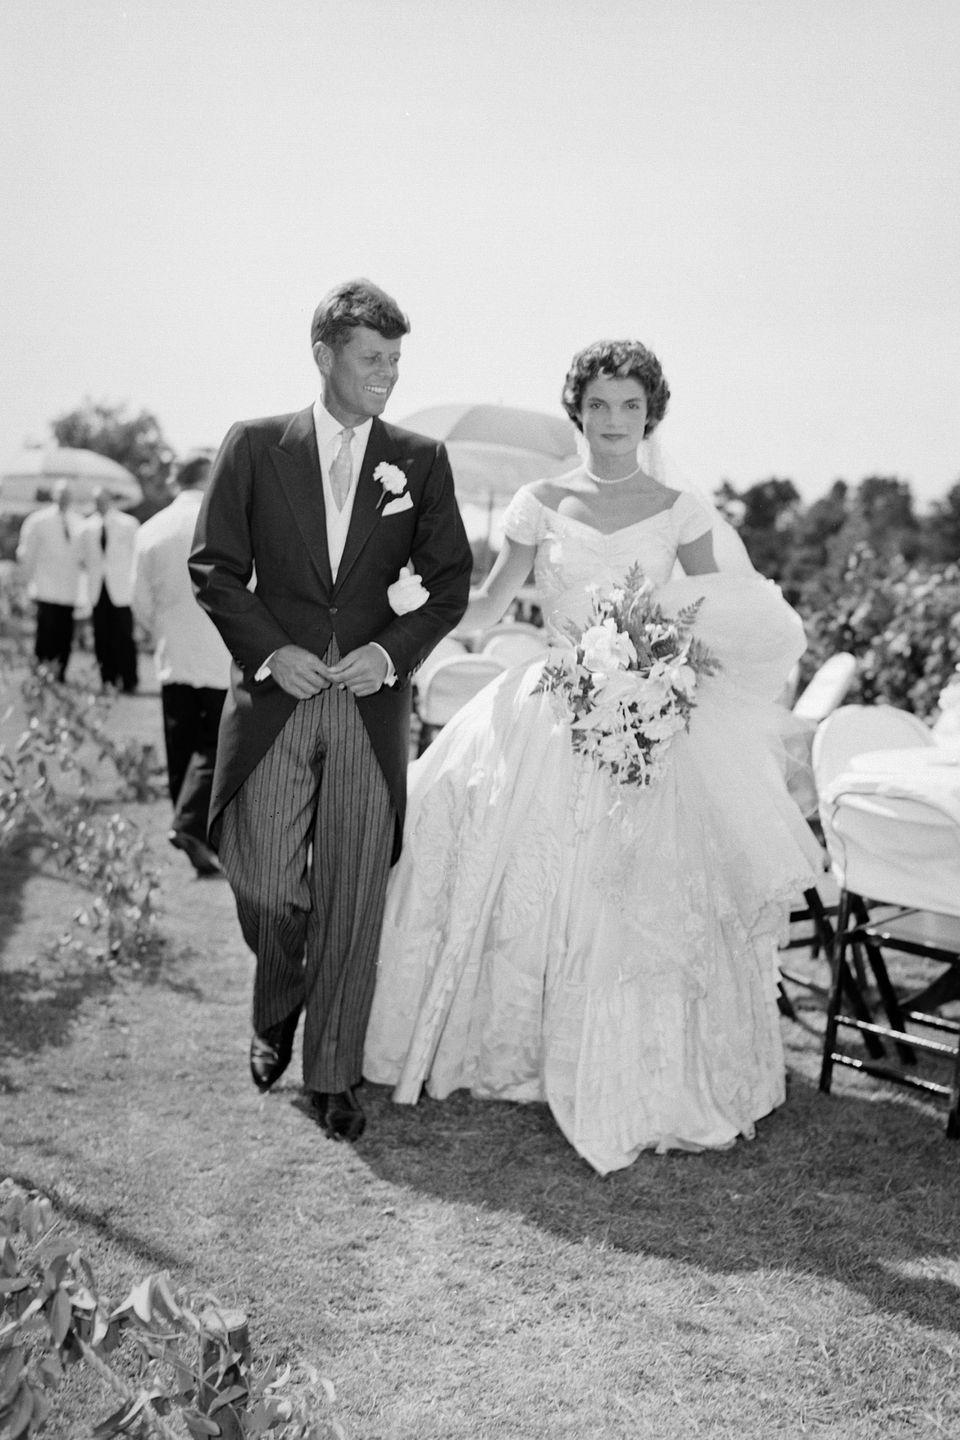 """<p>John F. Kennedy and Jacqueline Bouvier tied the knot in a September wedding in Newport, Rhode Island. The couple said """"I do"""" in St. Mary's Roman Catholic Church and held an elegant reception at the bride's family estate, Hammersmith Farm. </p>"""